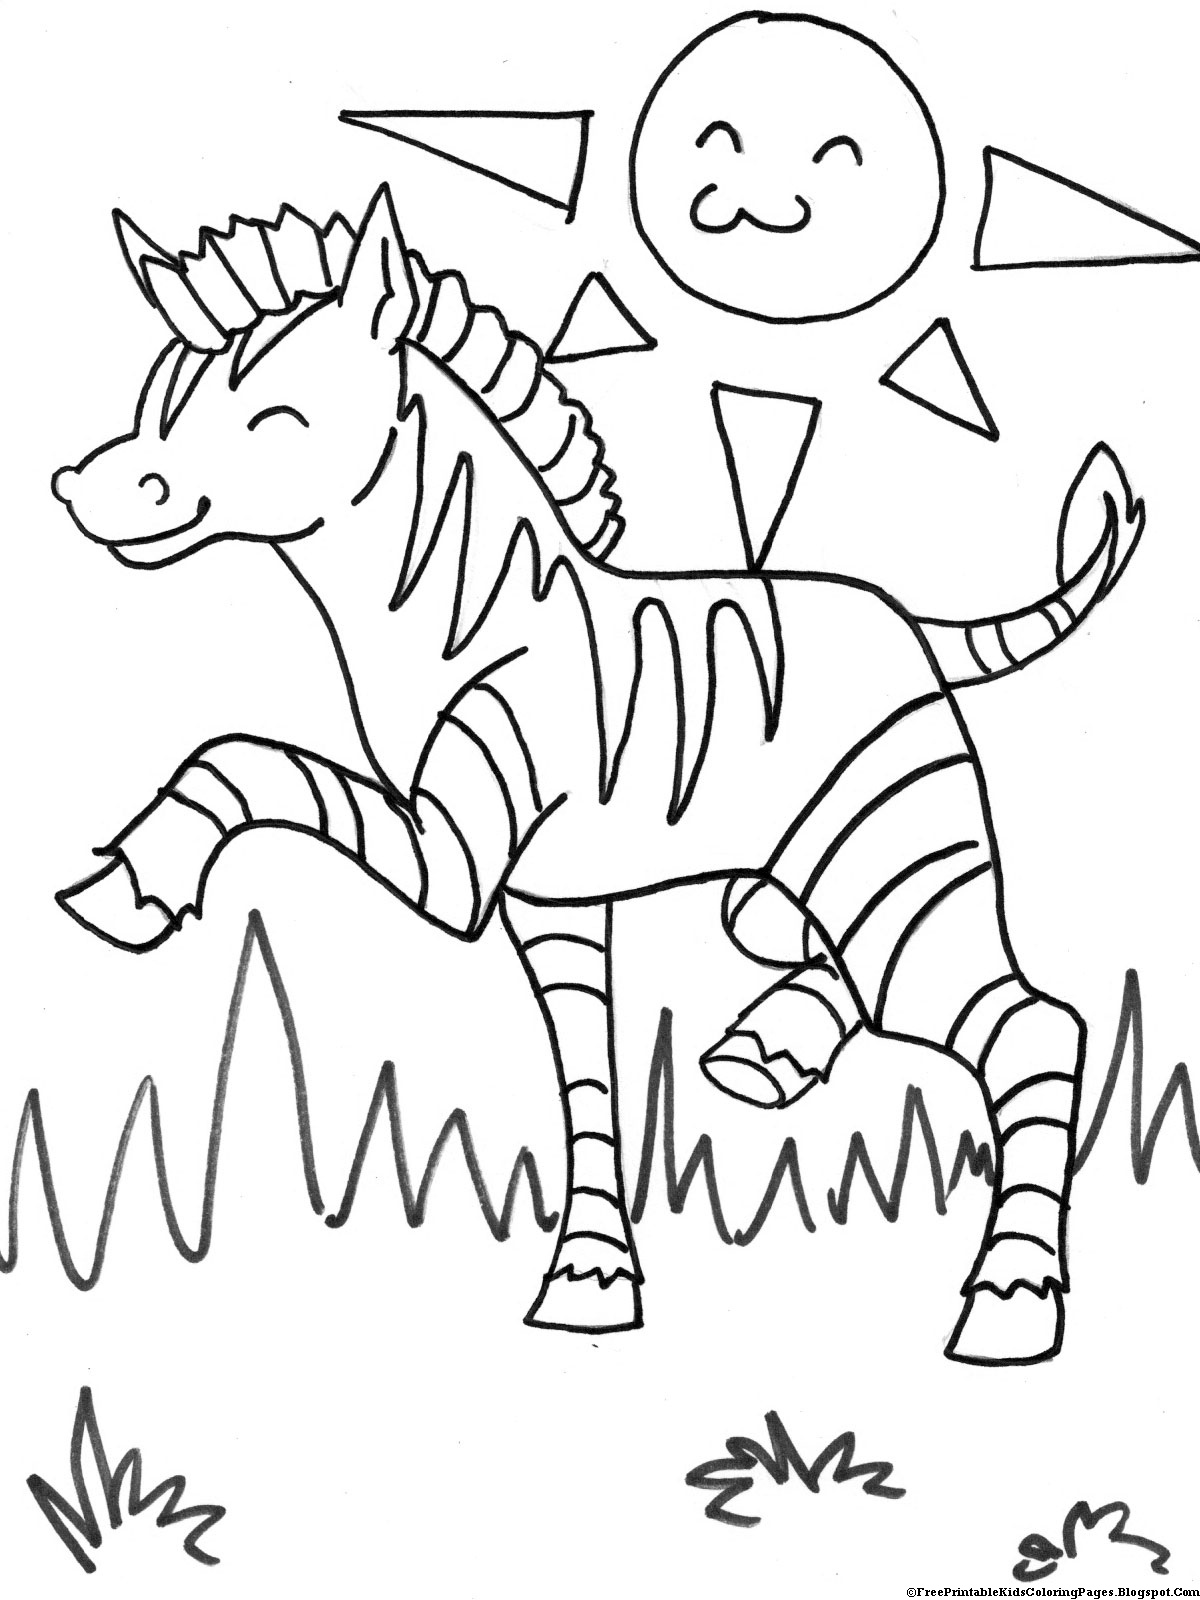 coloring printables zebra coloring pages free printable kids coloring pages printables coloring